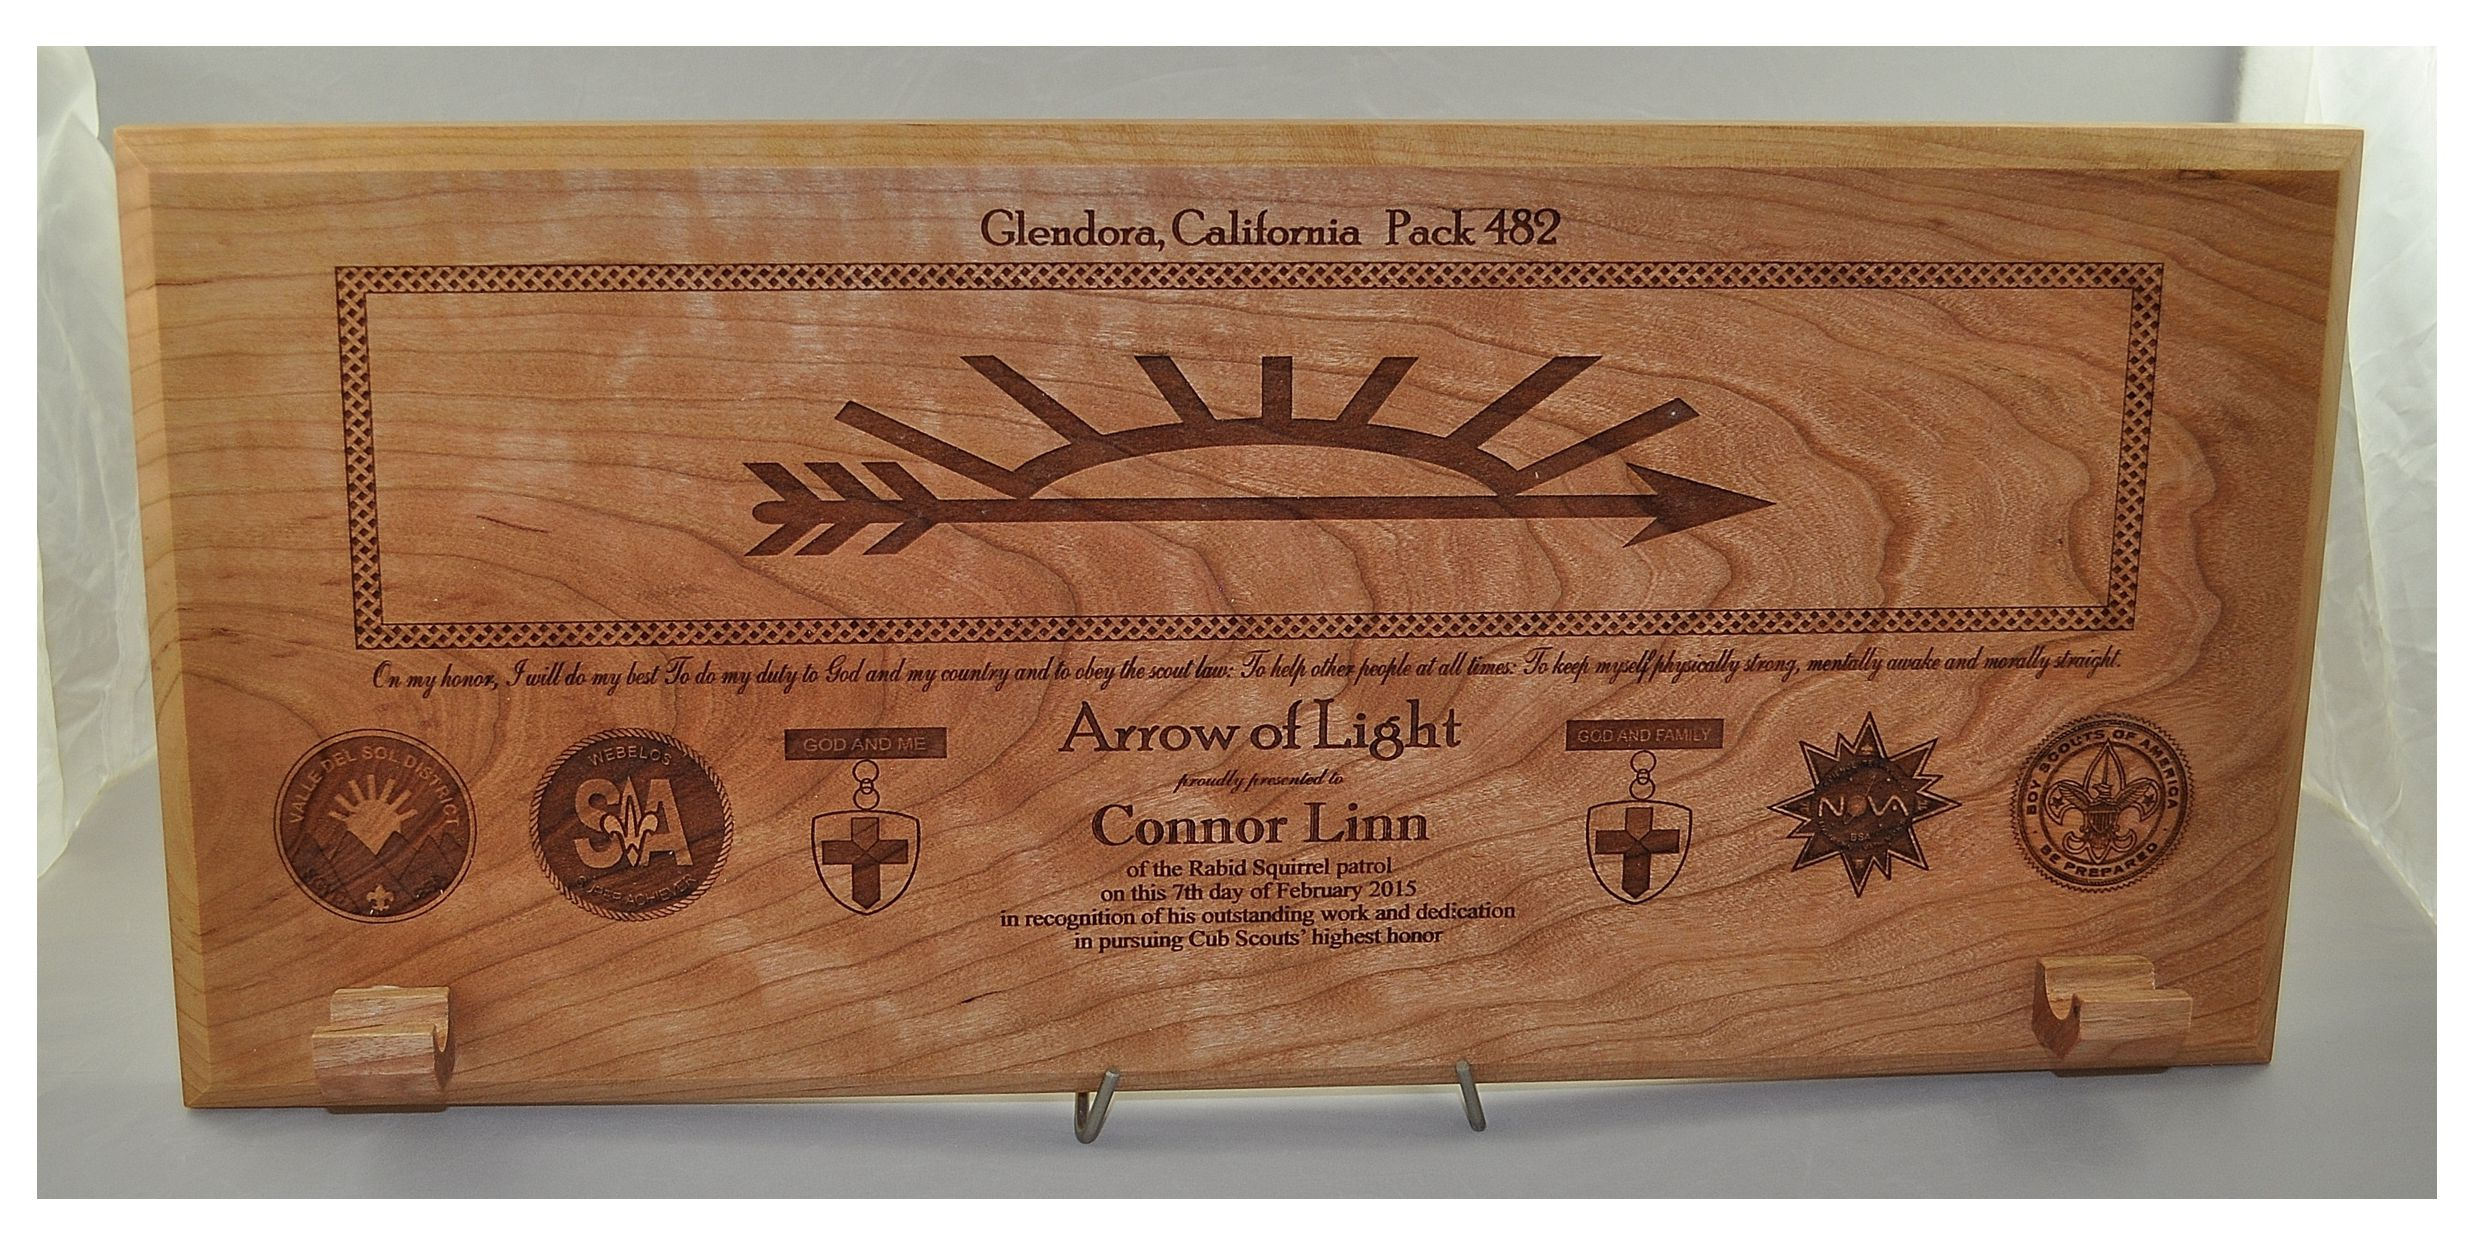 arrows com arrow plaque vinces amazon of light handmade dp